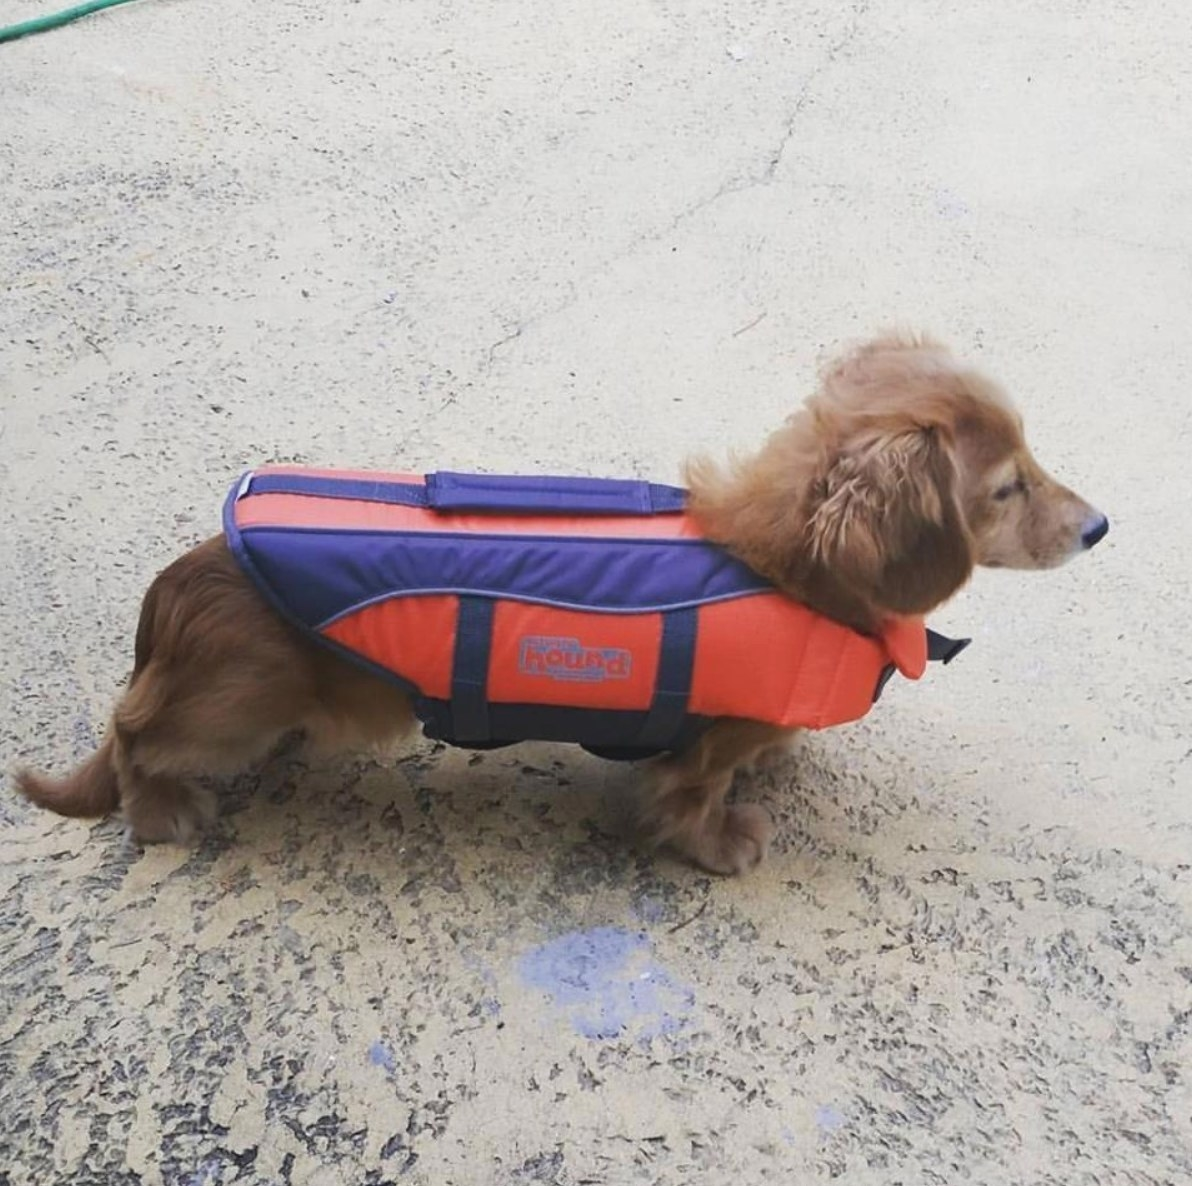 The dog life vest in red and blue